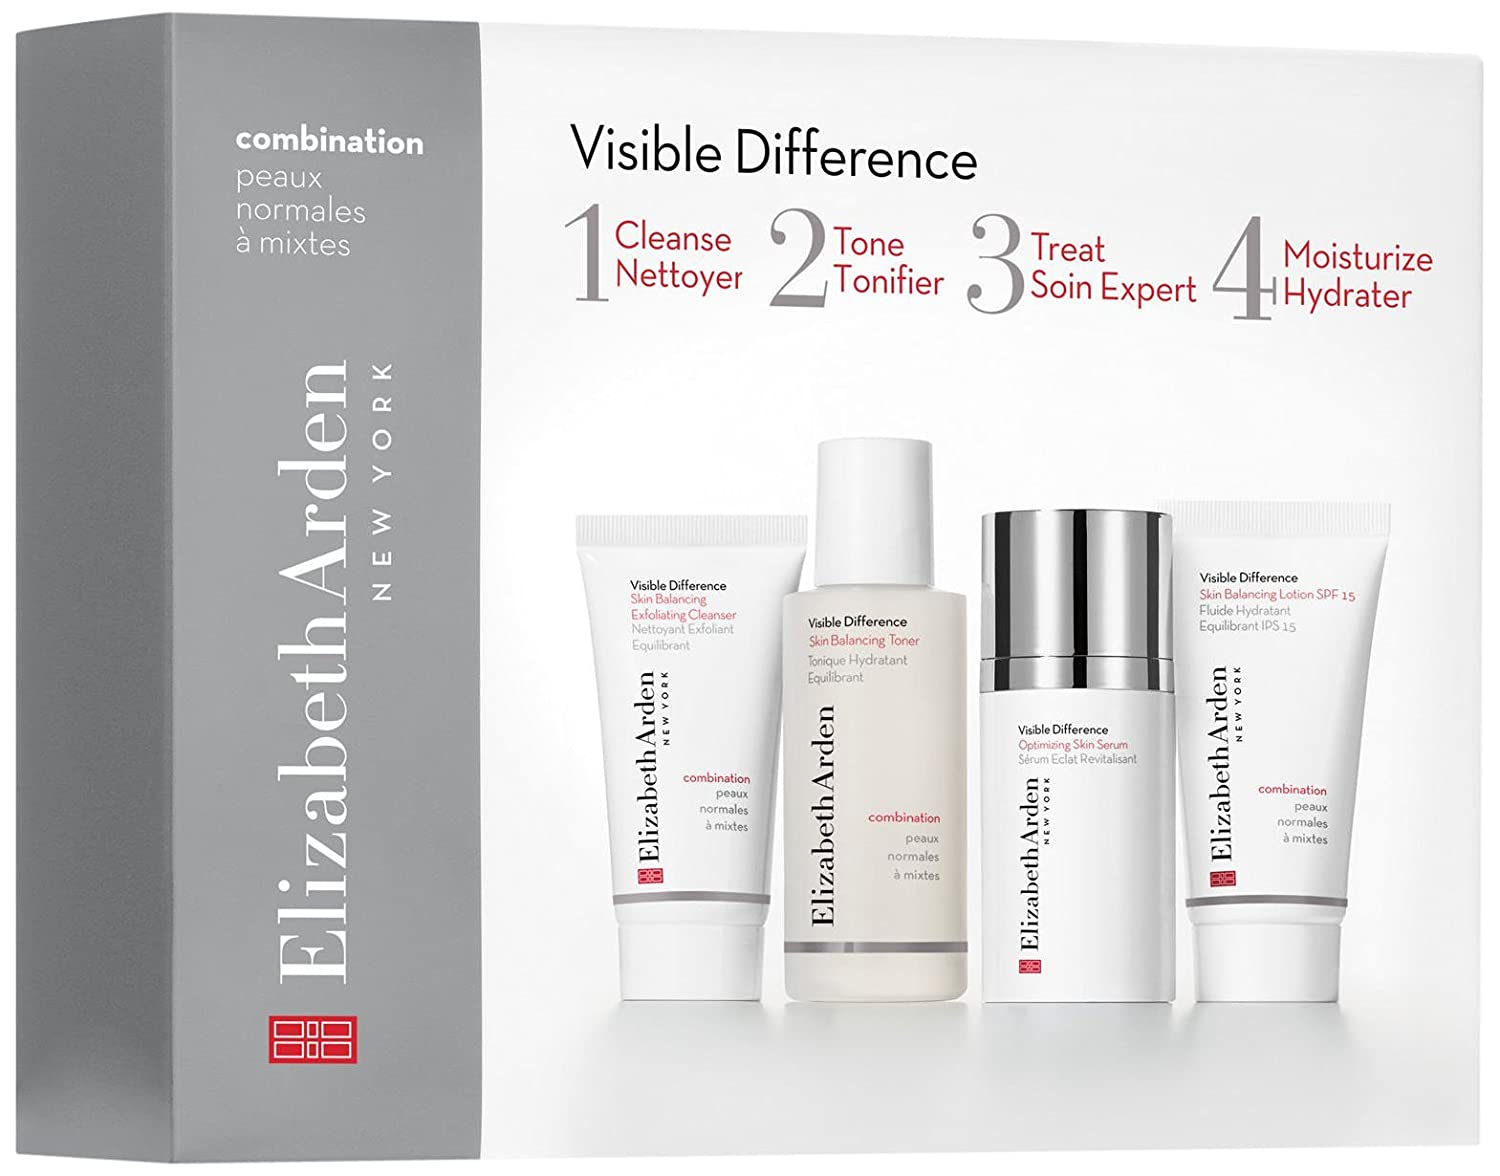 Elizabeth Arden Visible Difference A tan sólo 4 pasos Hidratación Gift Set 85805188641